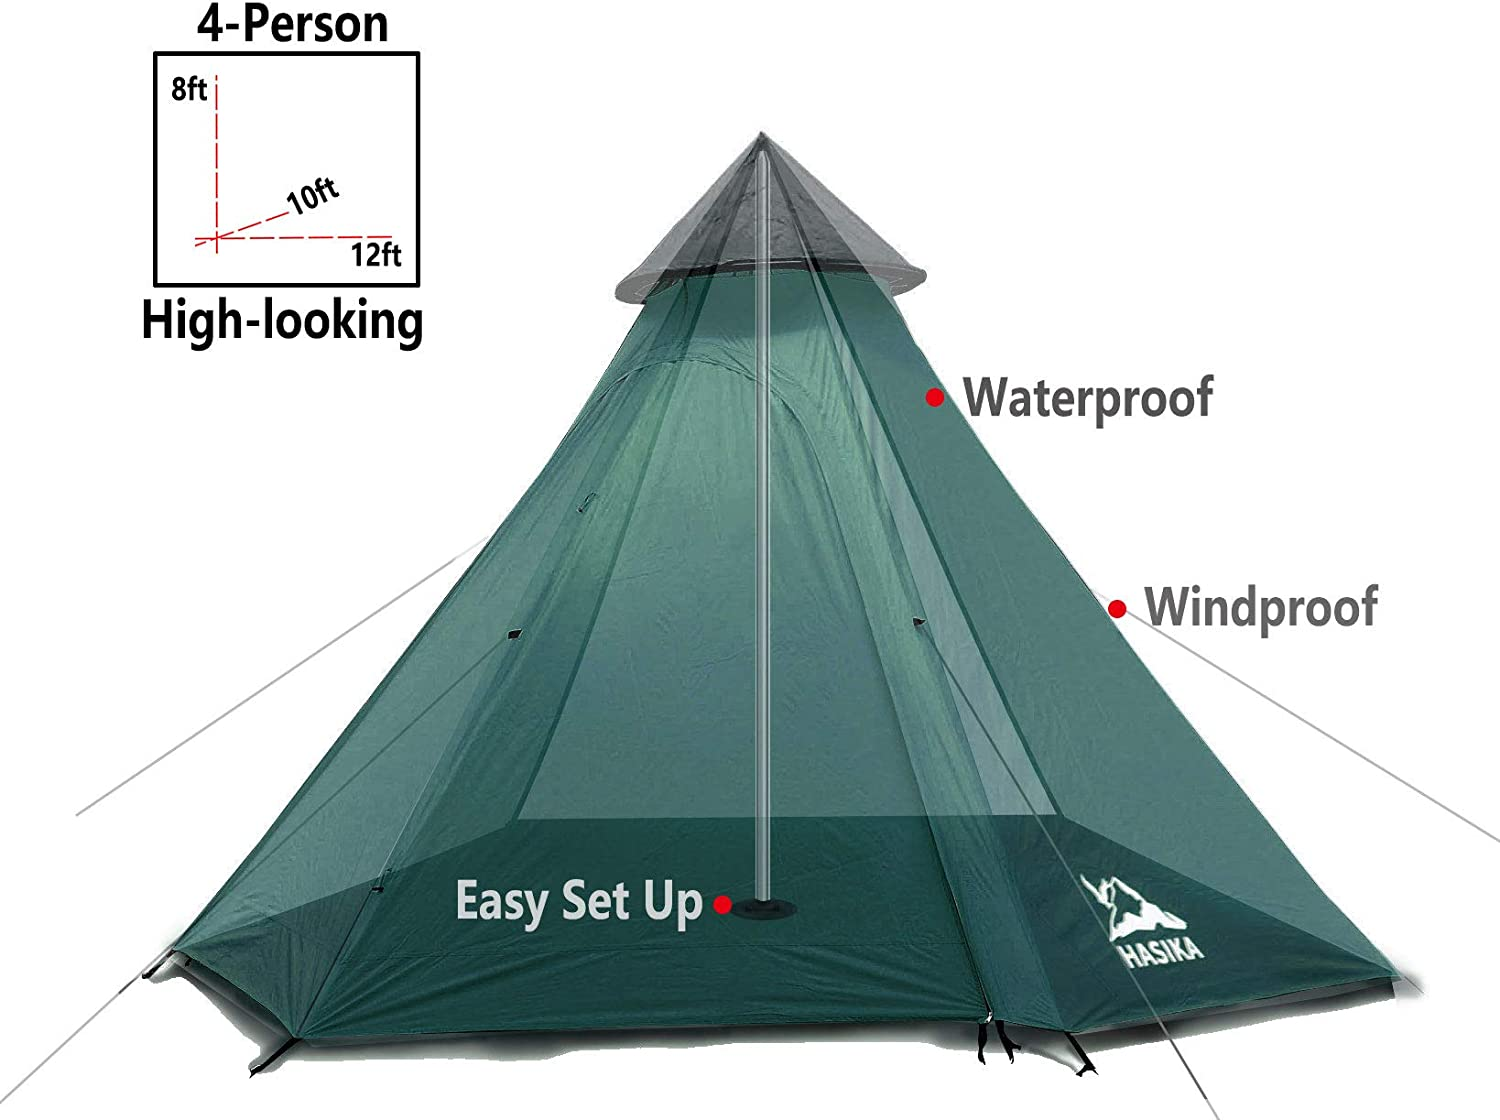 Teepee Camping Conical Tent with Screen Room for Family Camping Waterproof Windproof 4 Person Green 12x10x8ft